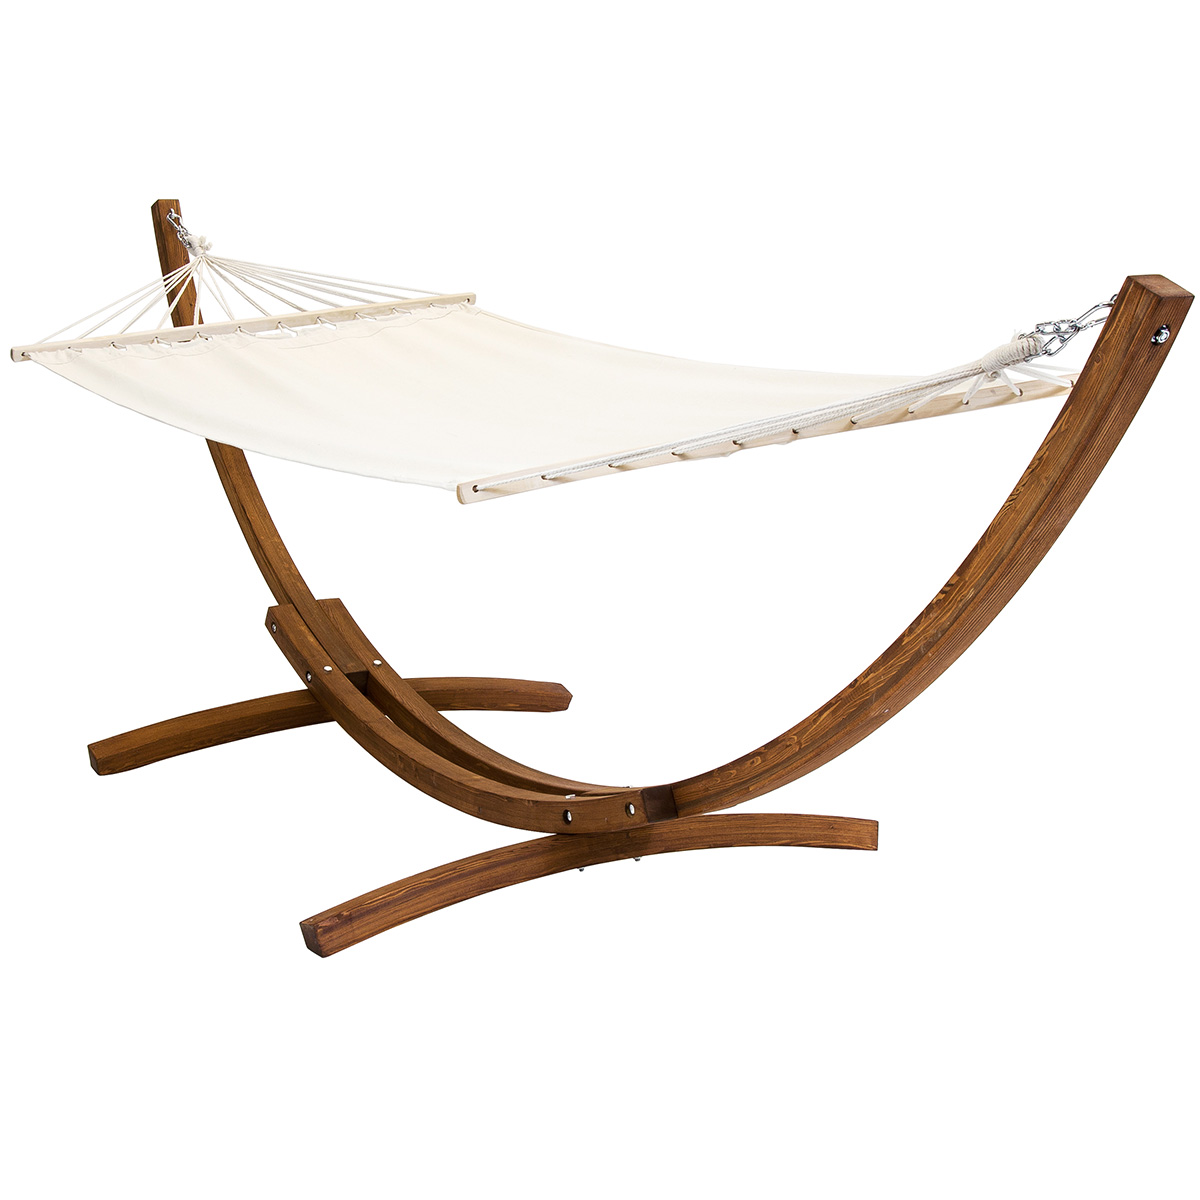 Patio Hammock: Free Standing Canvas Garden Hammock With Wooden Arc Stand